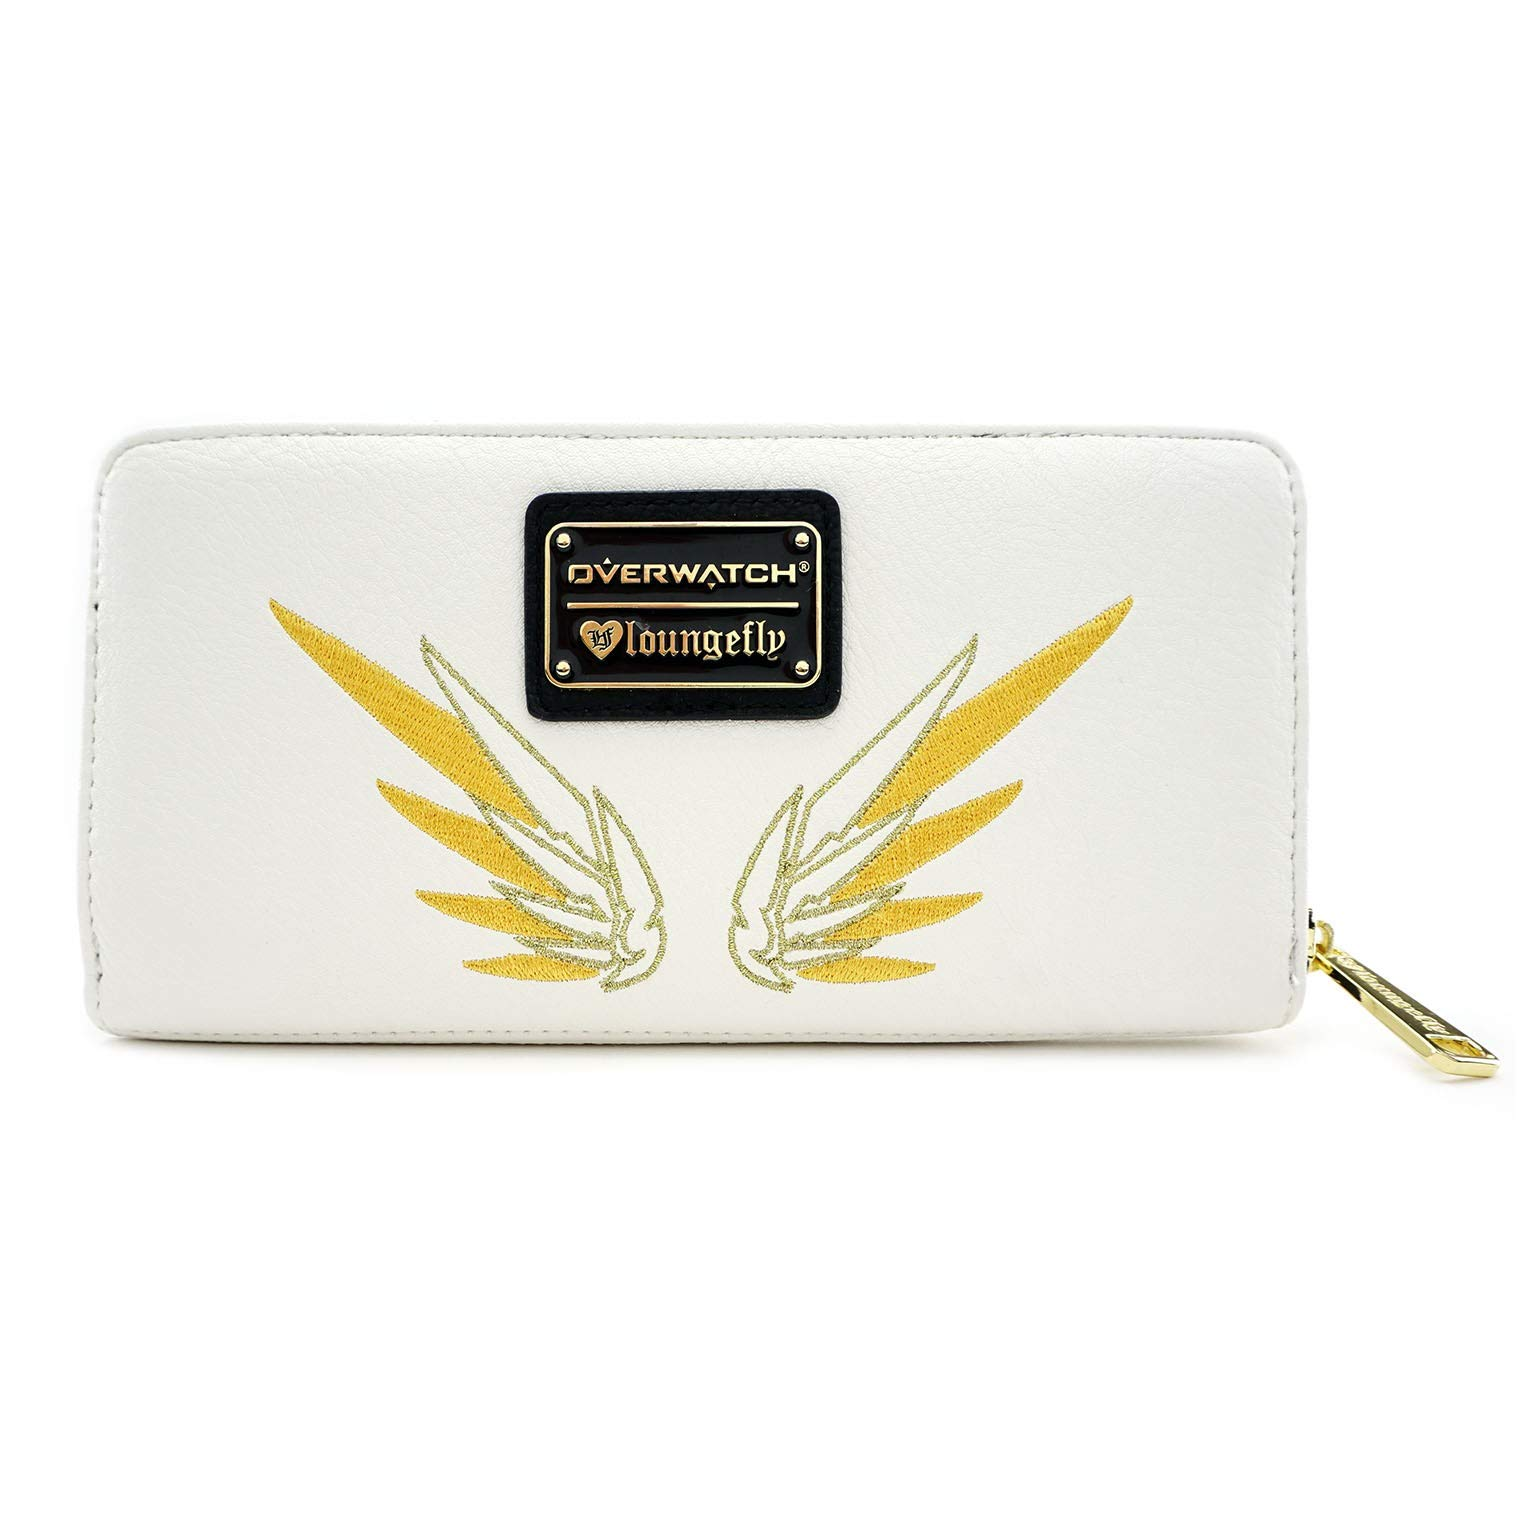 Loungefly Overwatch Mercy Faux Leather Zip around Wallet,Black,cream,Standard by Loungefly (Image #2)